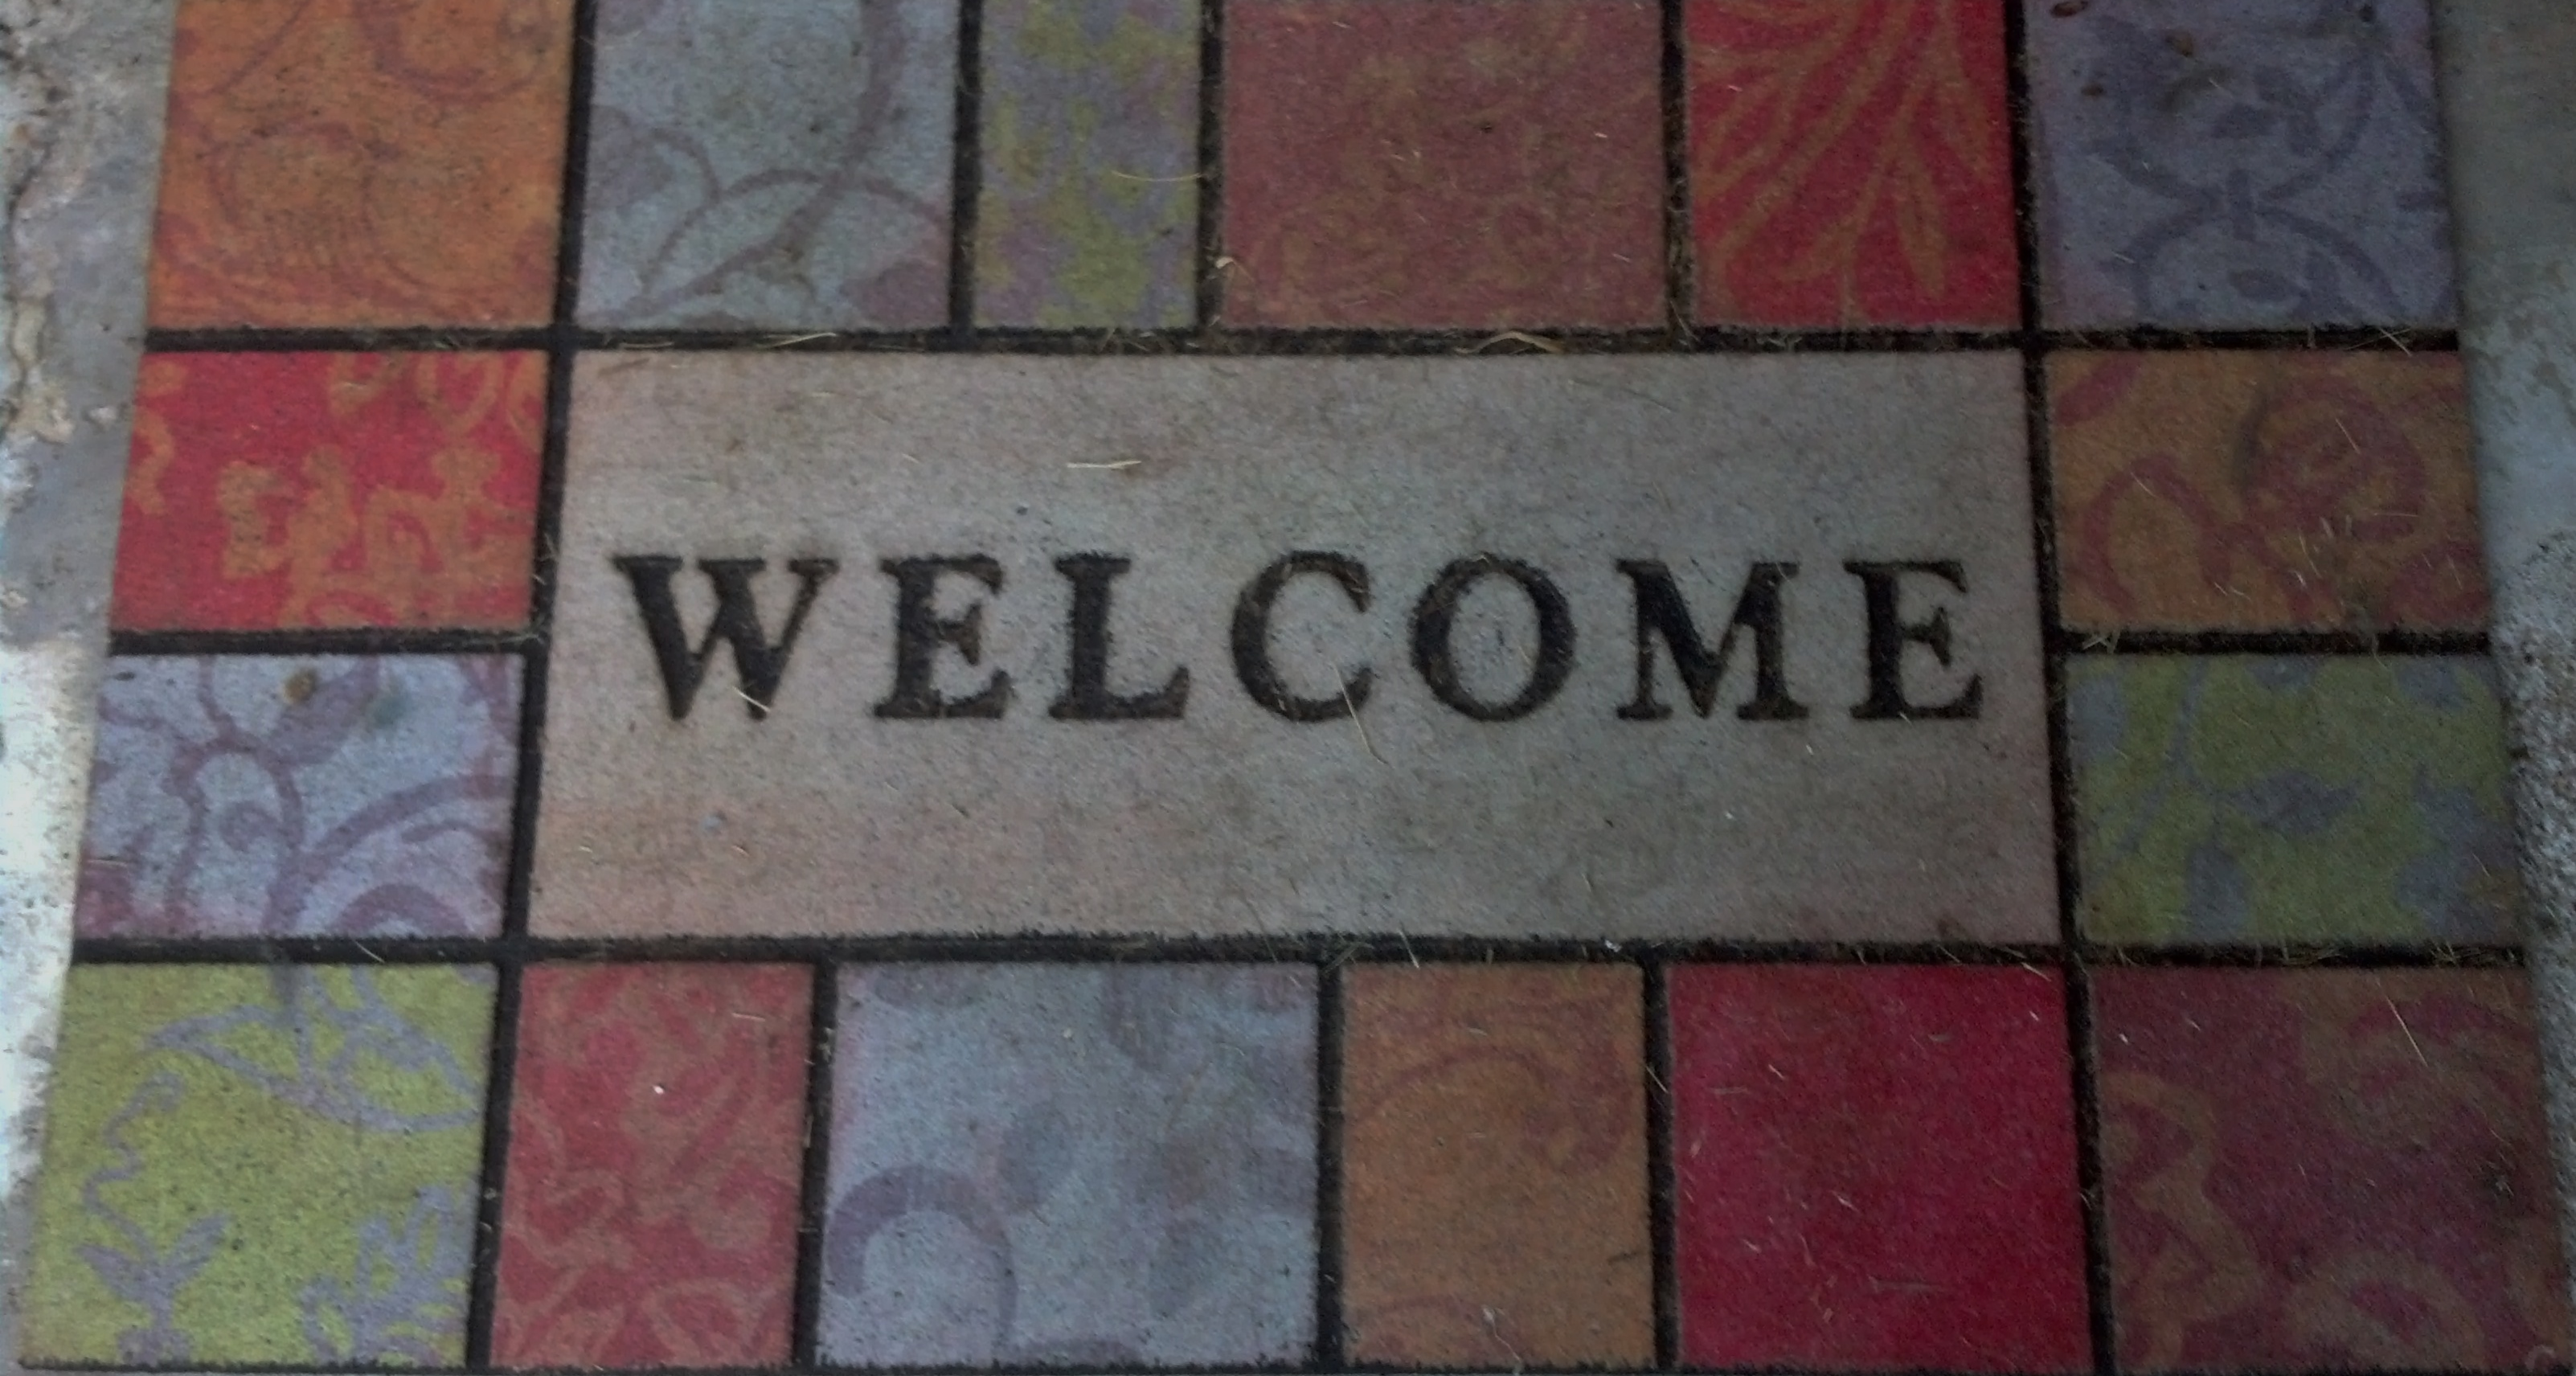 Leave Welcome Mat July 2013 Julie Glover Author